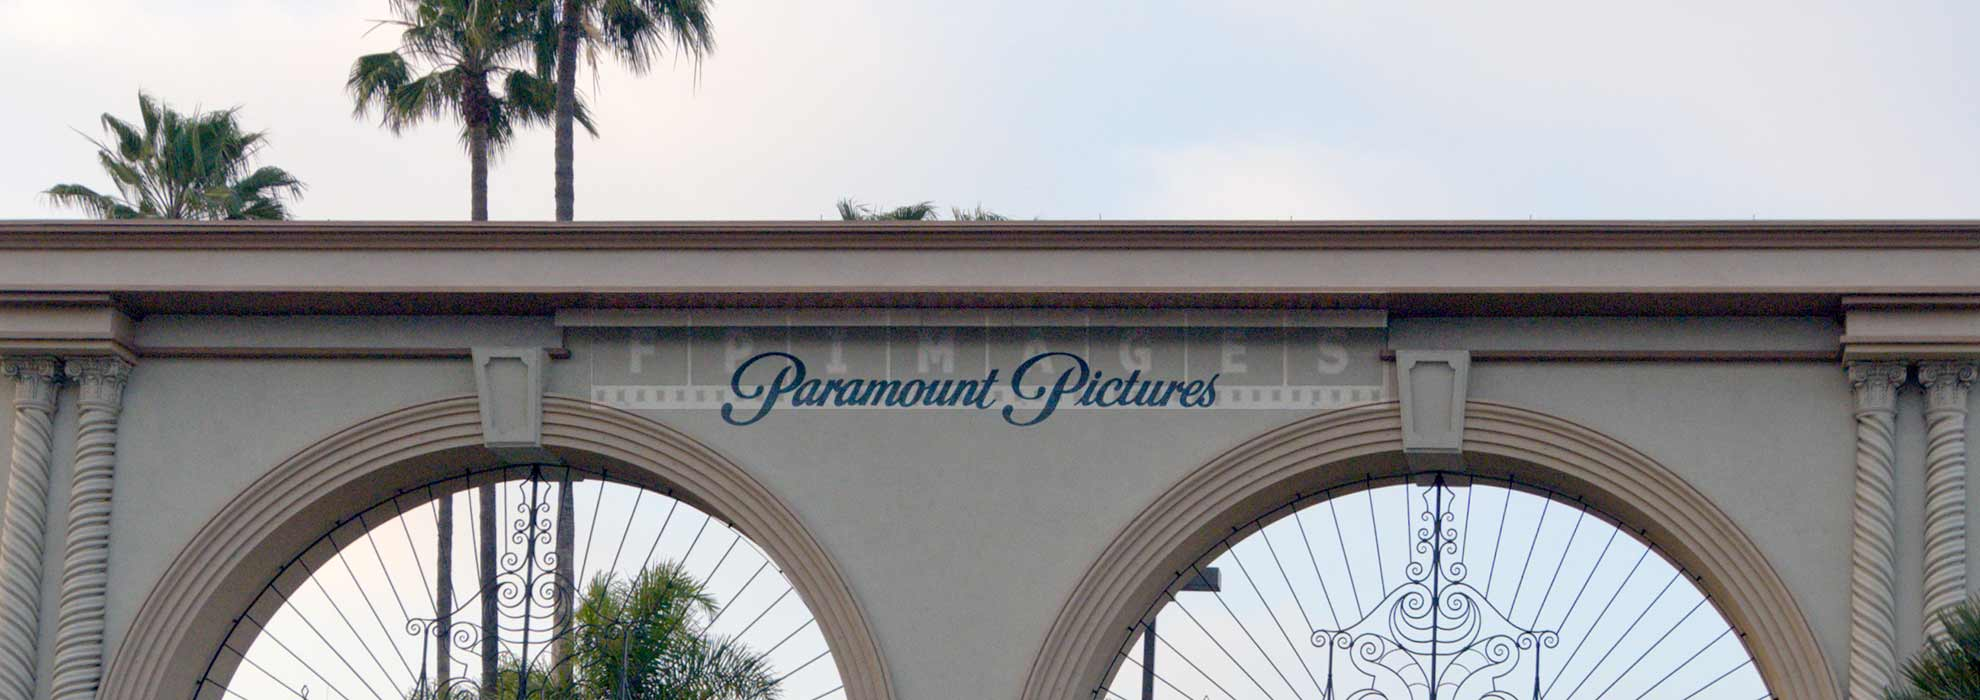 Paramount Pictures gate in Hollywood